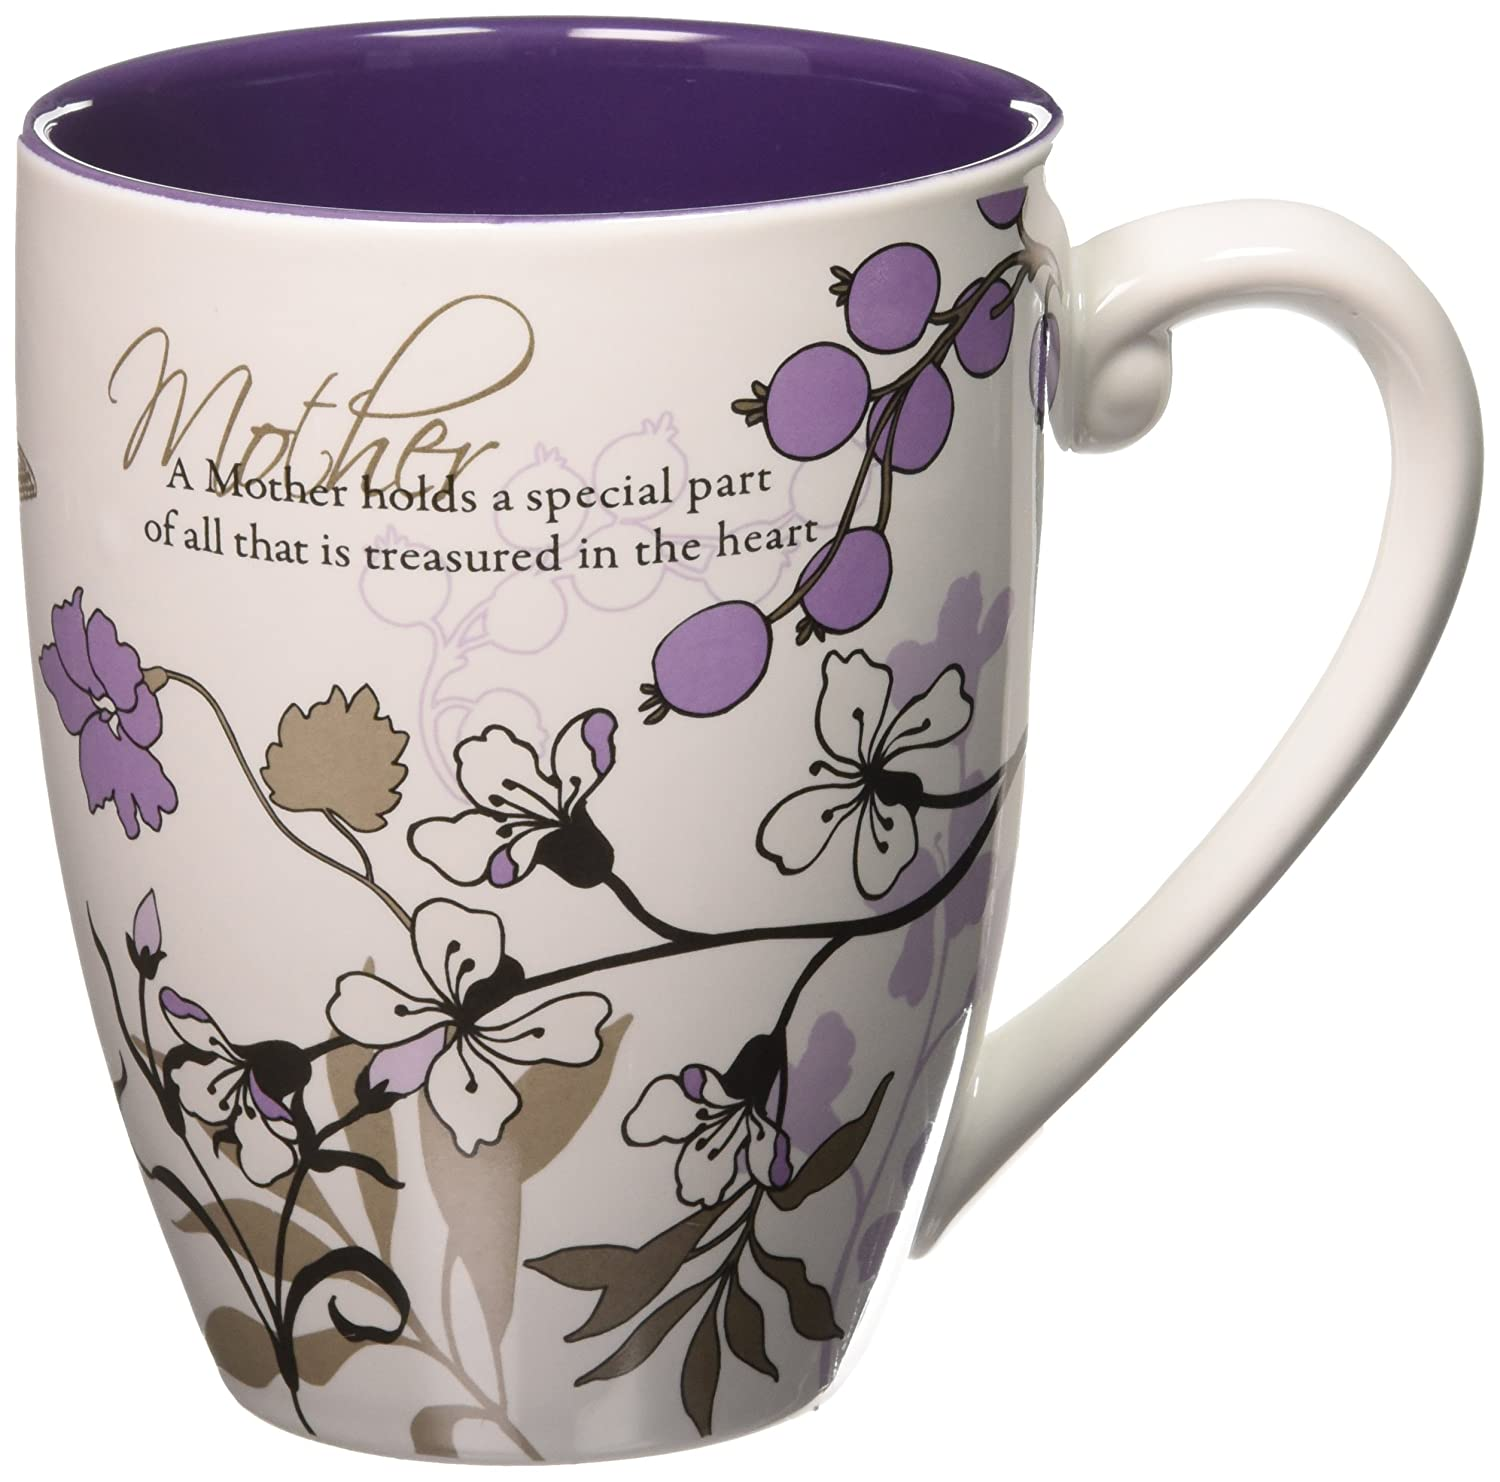 Pavilion Mark My Words Mother Mug 20-Ounce 4-3/4-Inch